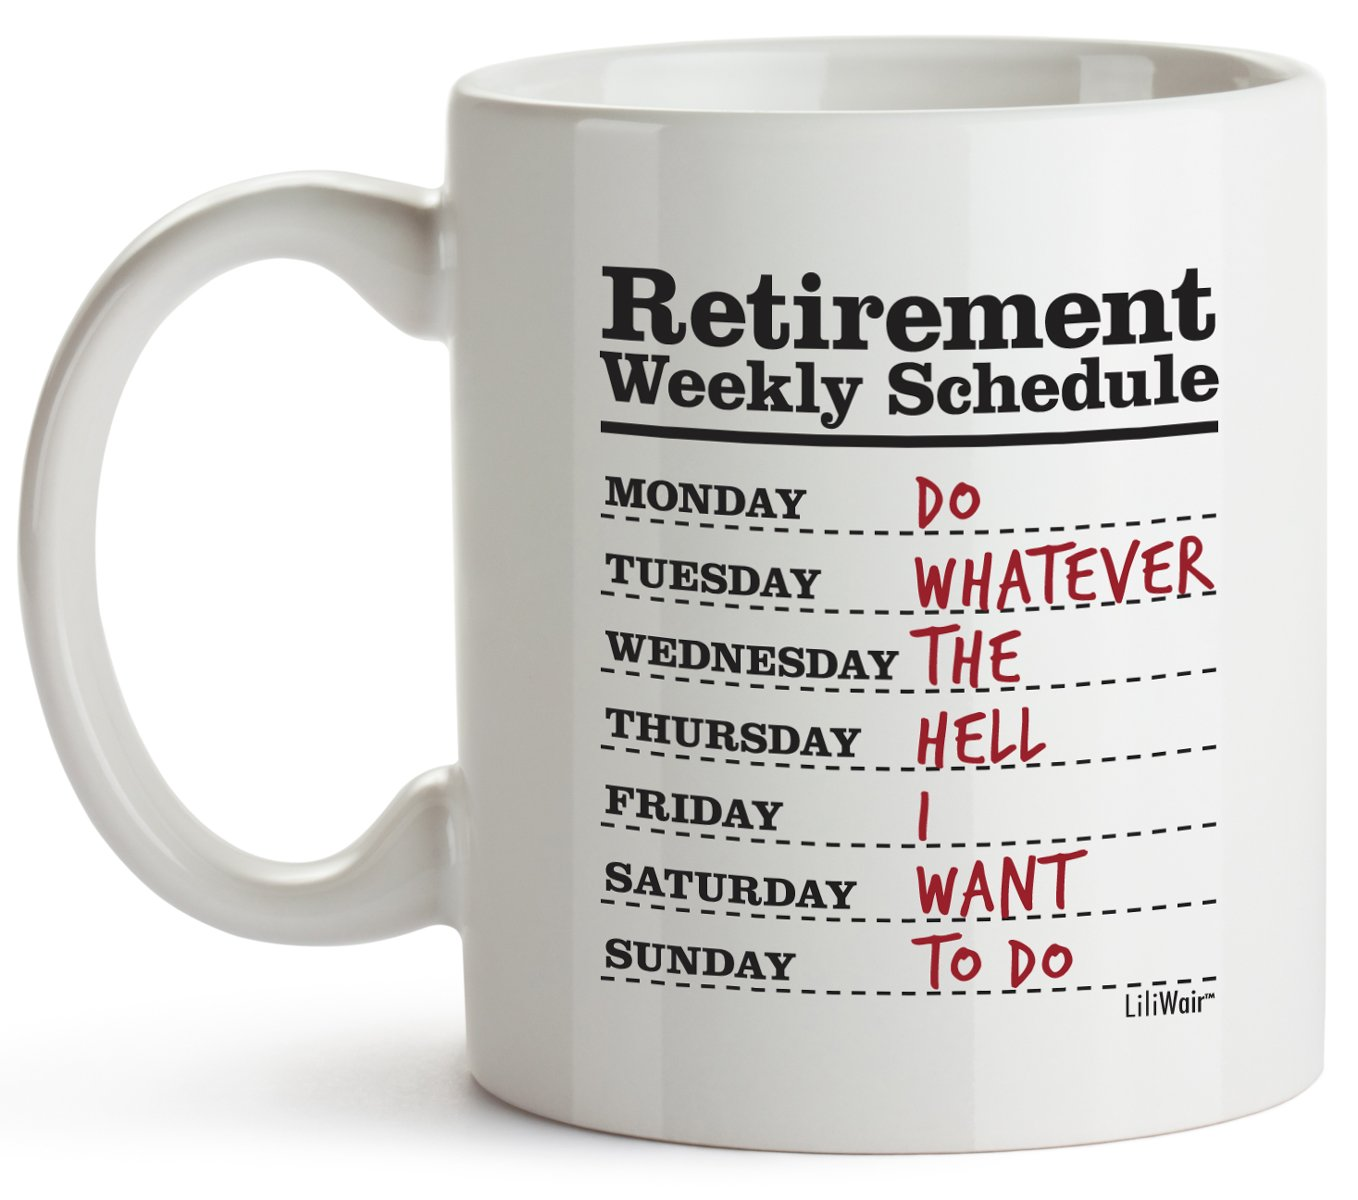 Funny Retirement Gifts for Women Men Dad Mom. Retirement Coffee Mug Gift. Retired Schedule Calendar Mugs for Coworkers Office & Family. Unique Novelty Ideas for Her Nurses Navy Air Force Military Gag by LiliWair (Image #2)